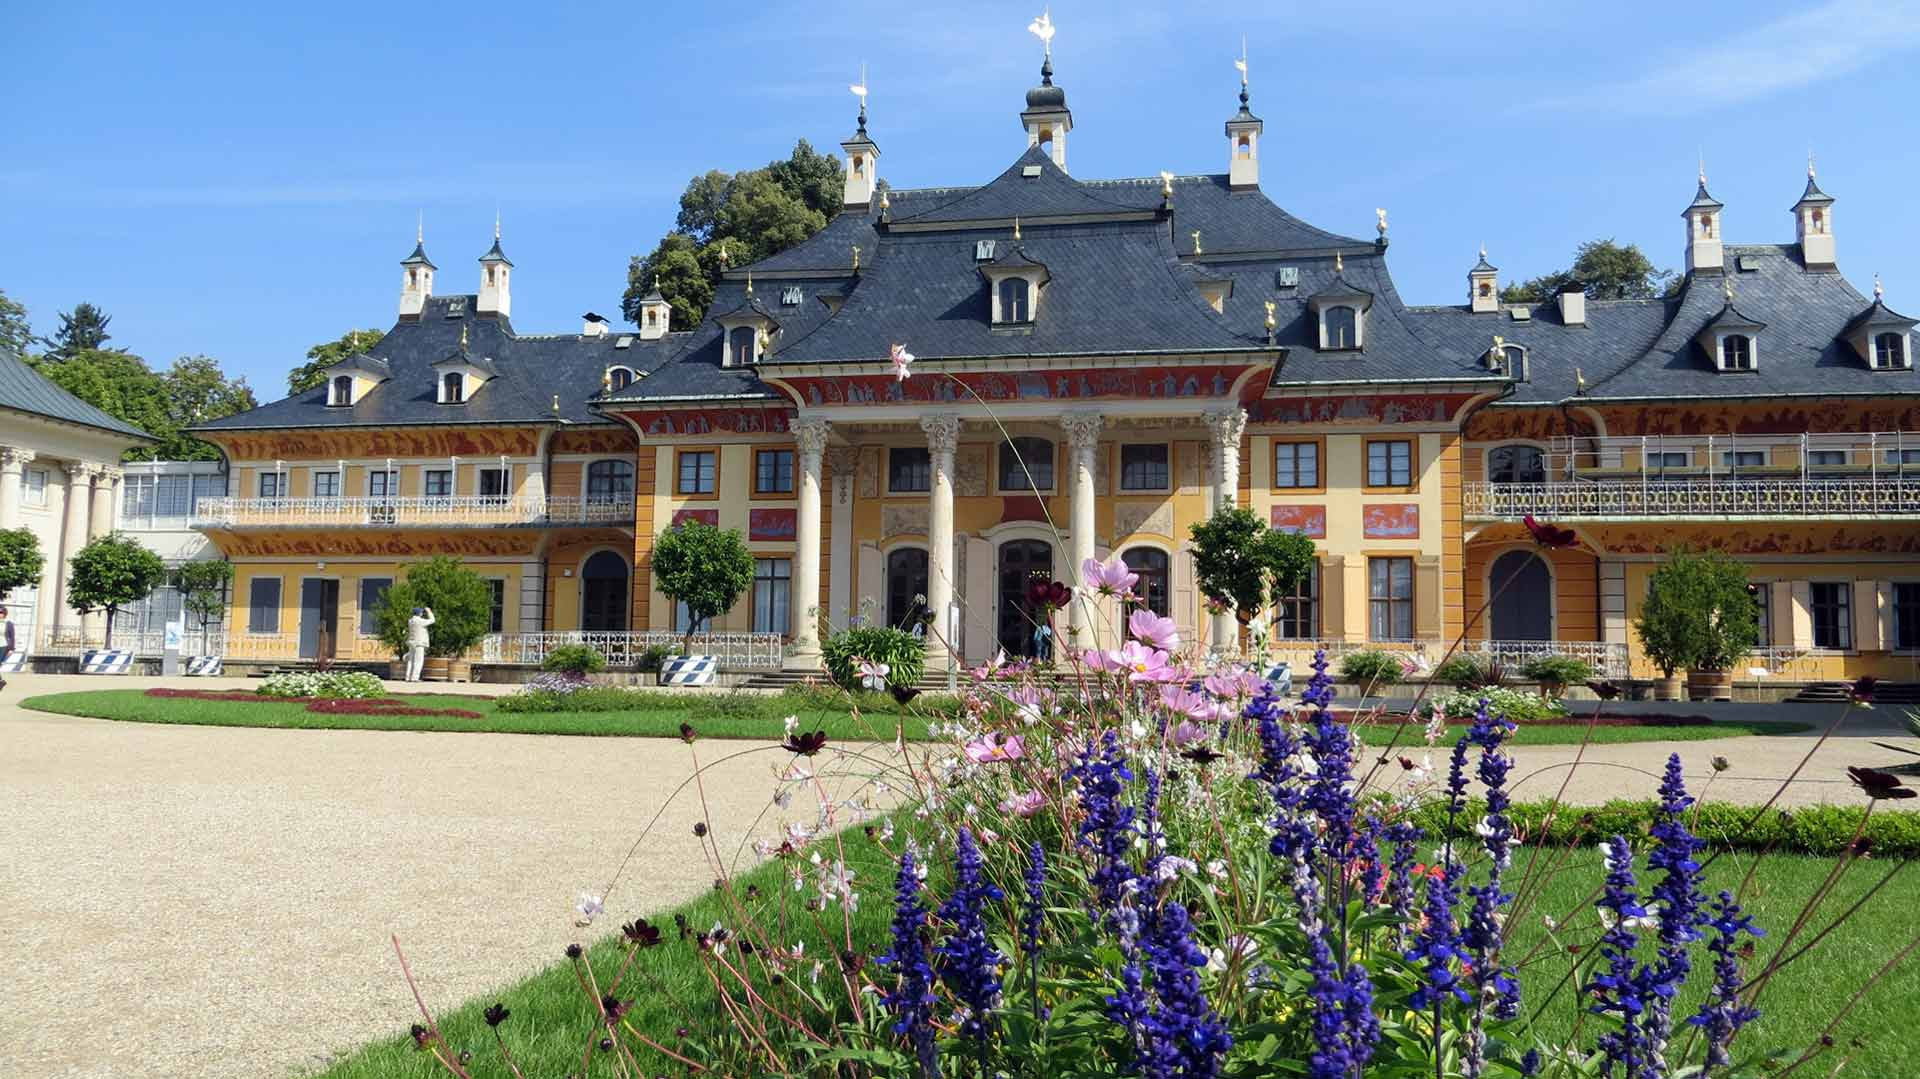 Schloss Pillnitz was een van de pronkpaleizen van August de Sterke.